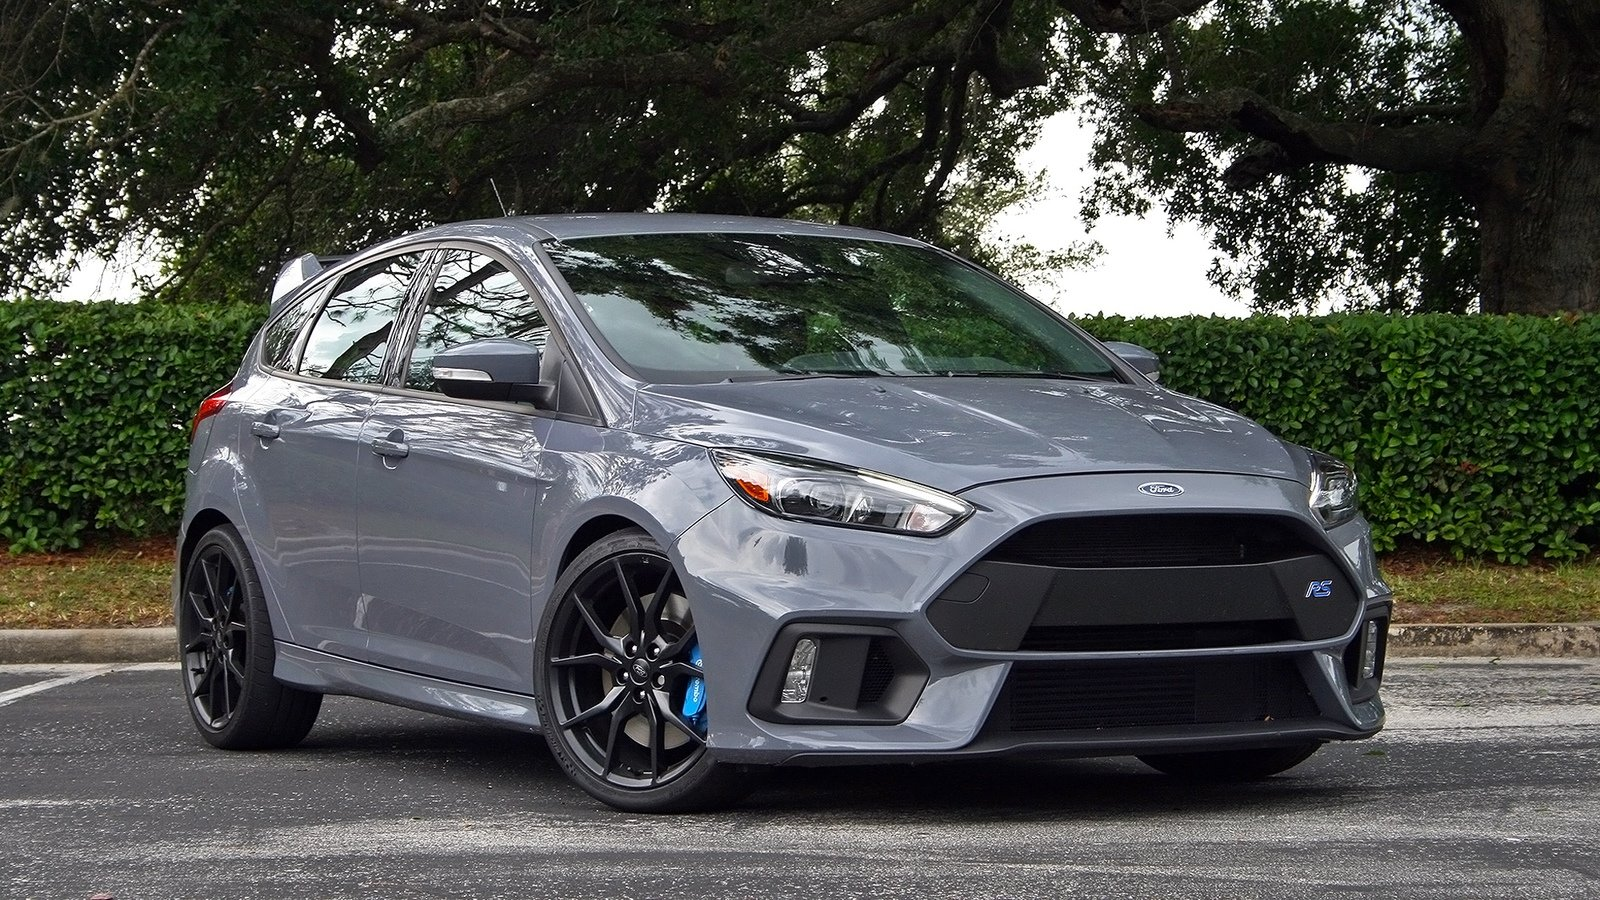 2021 Ford Fiesta St Rs New Model and Performance